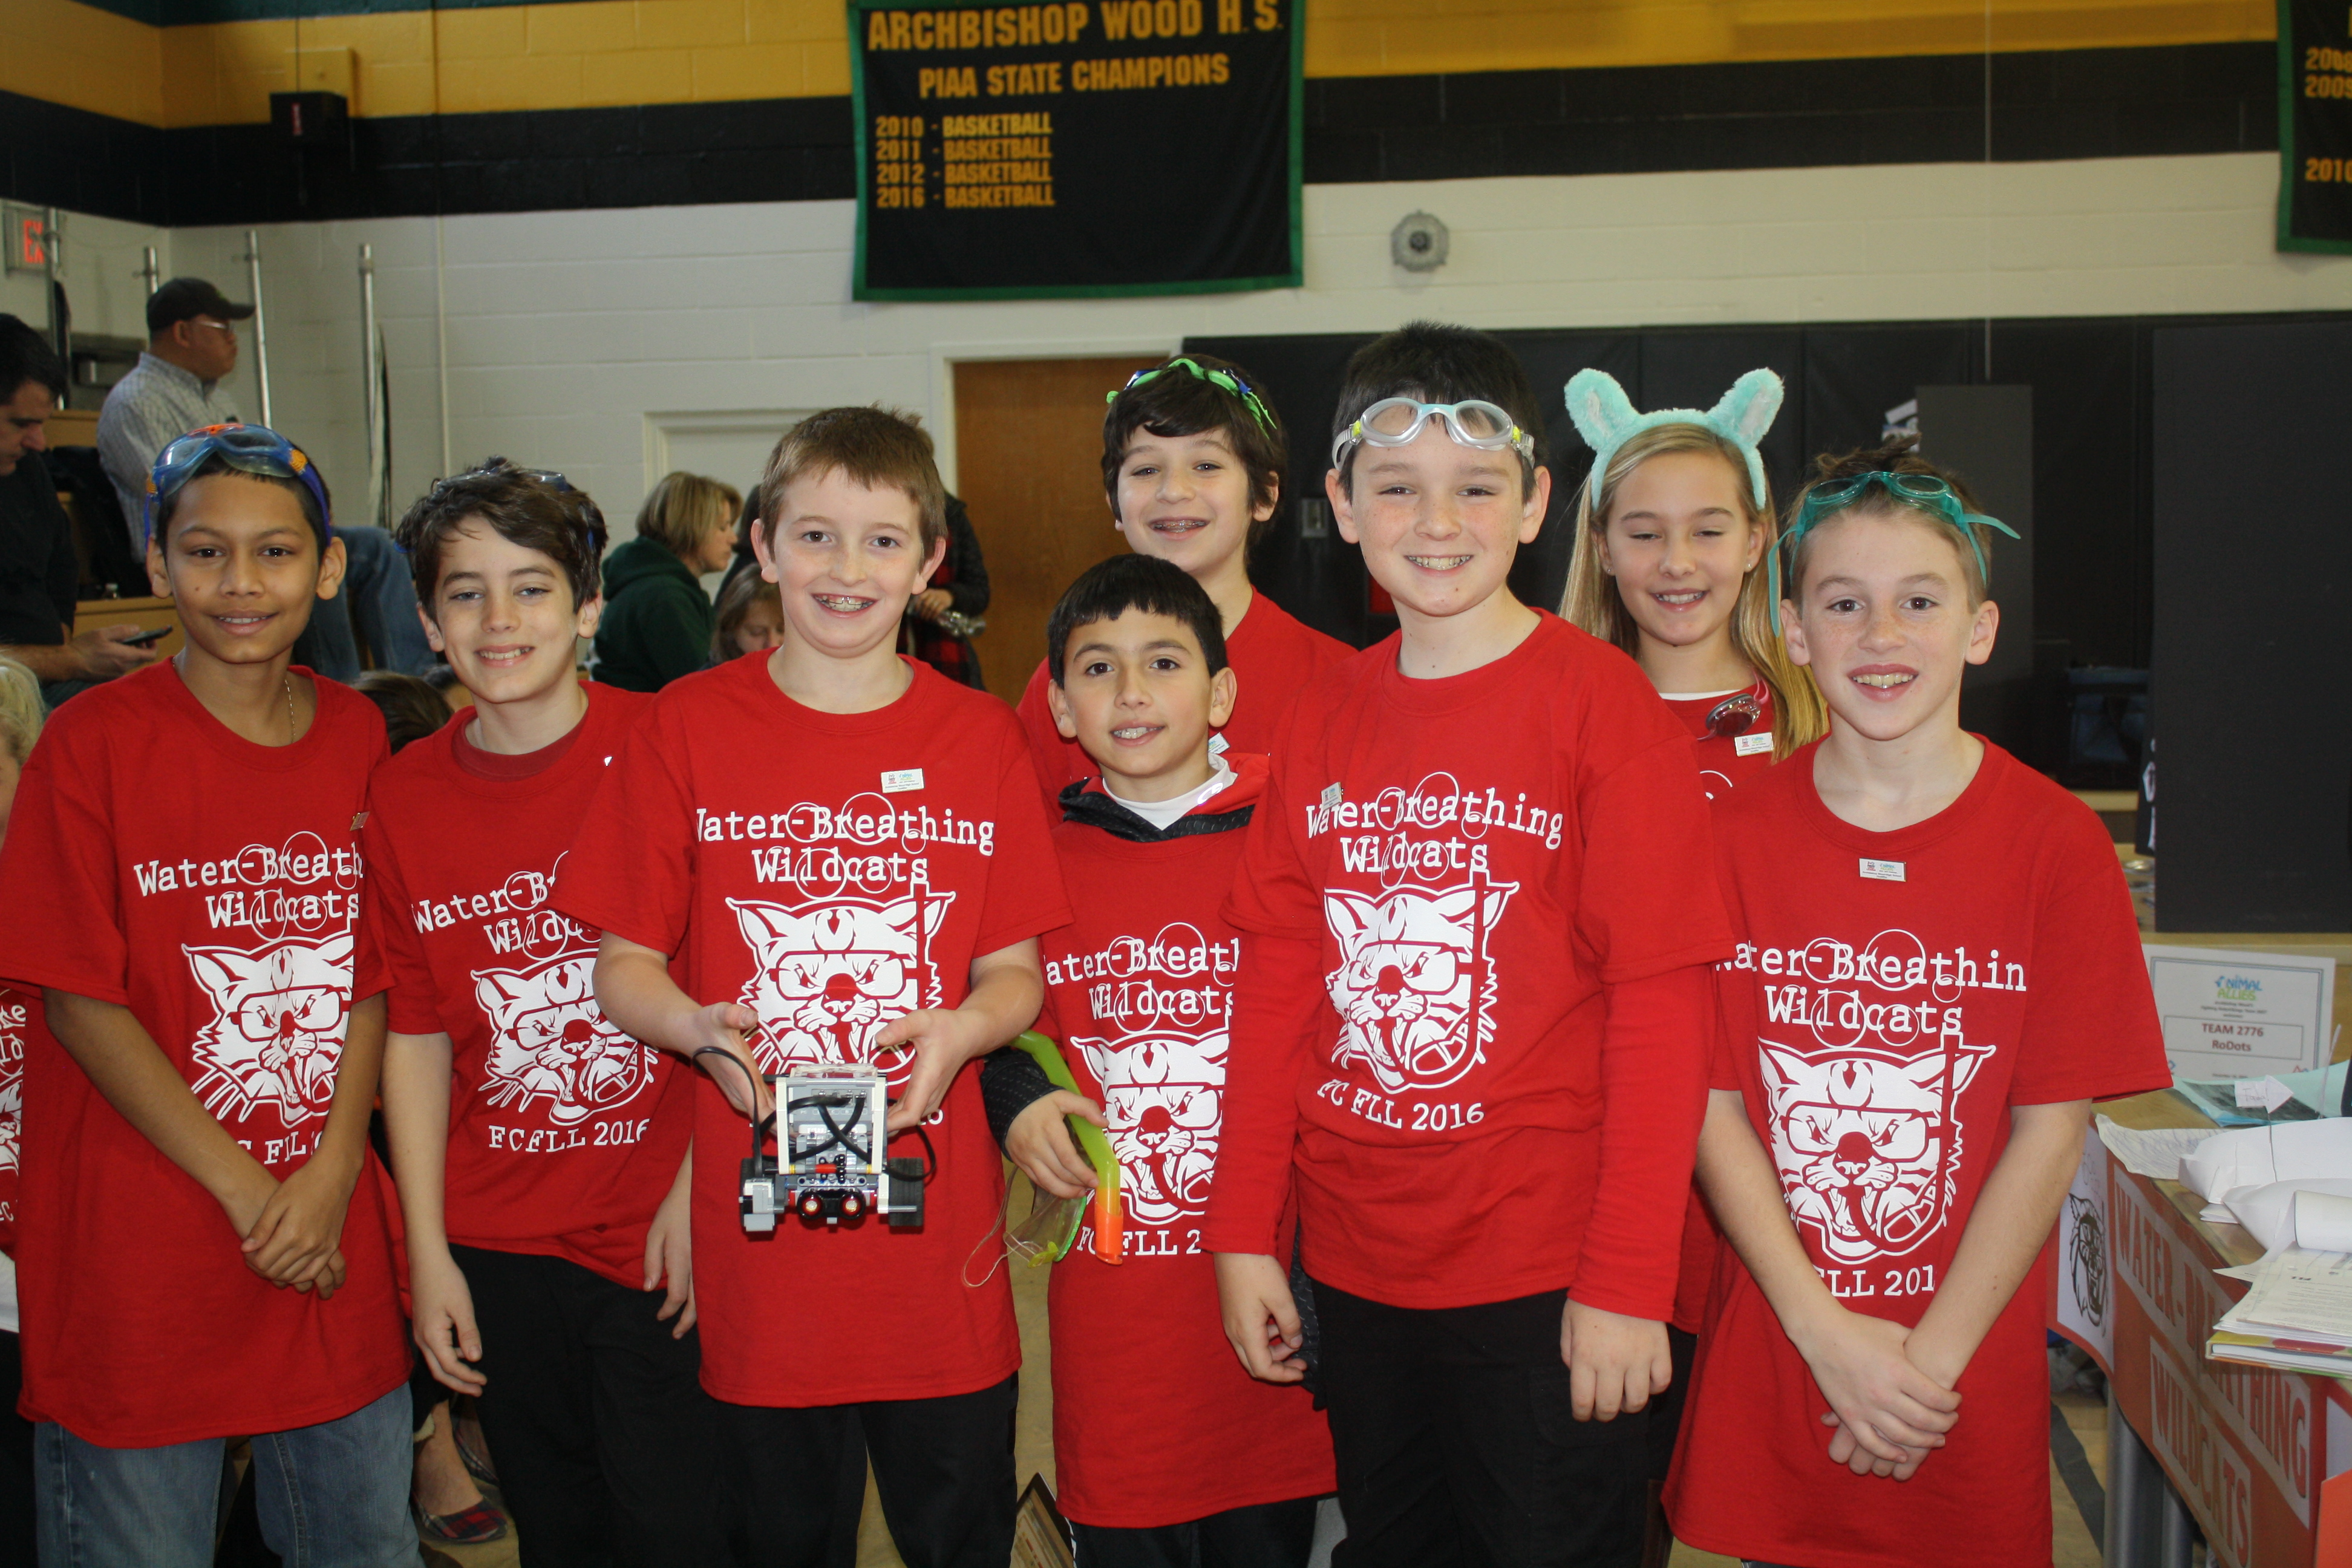 2016 Fourth Annual FLL Tournament